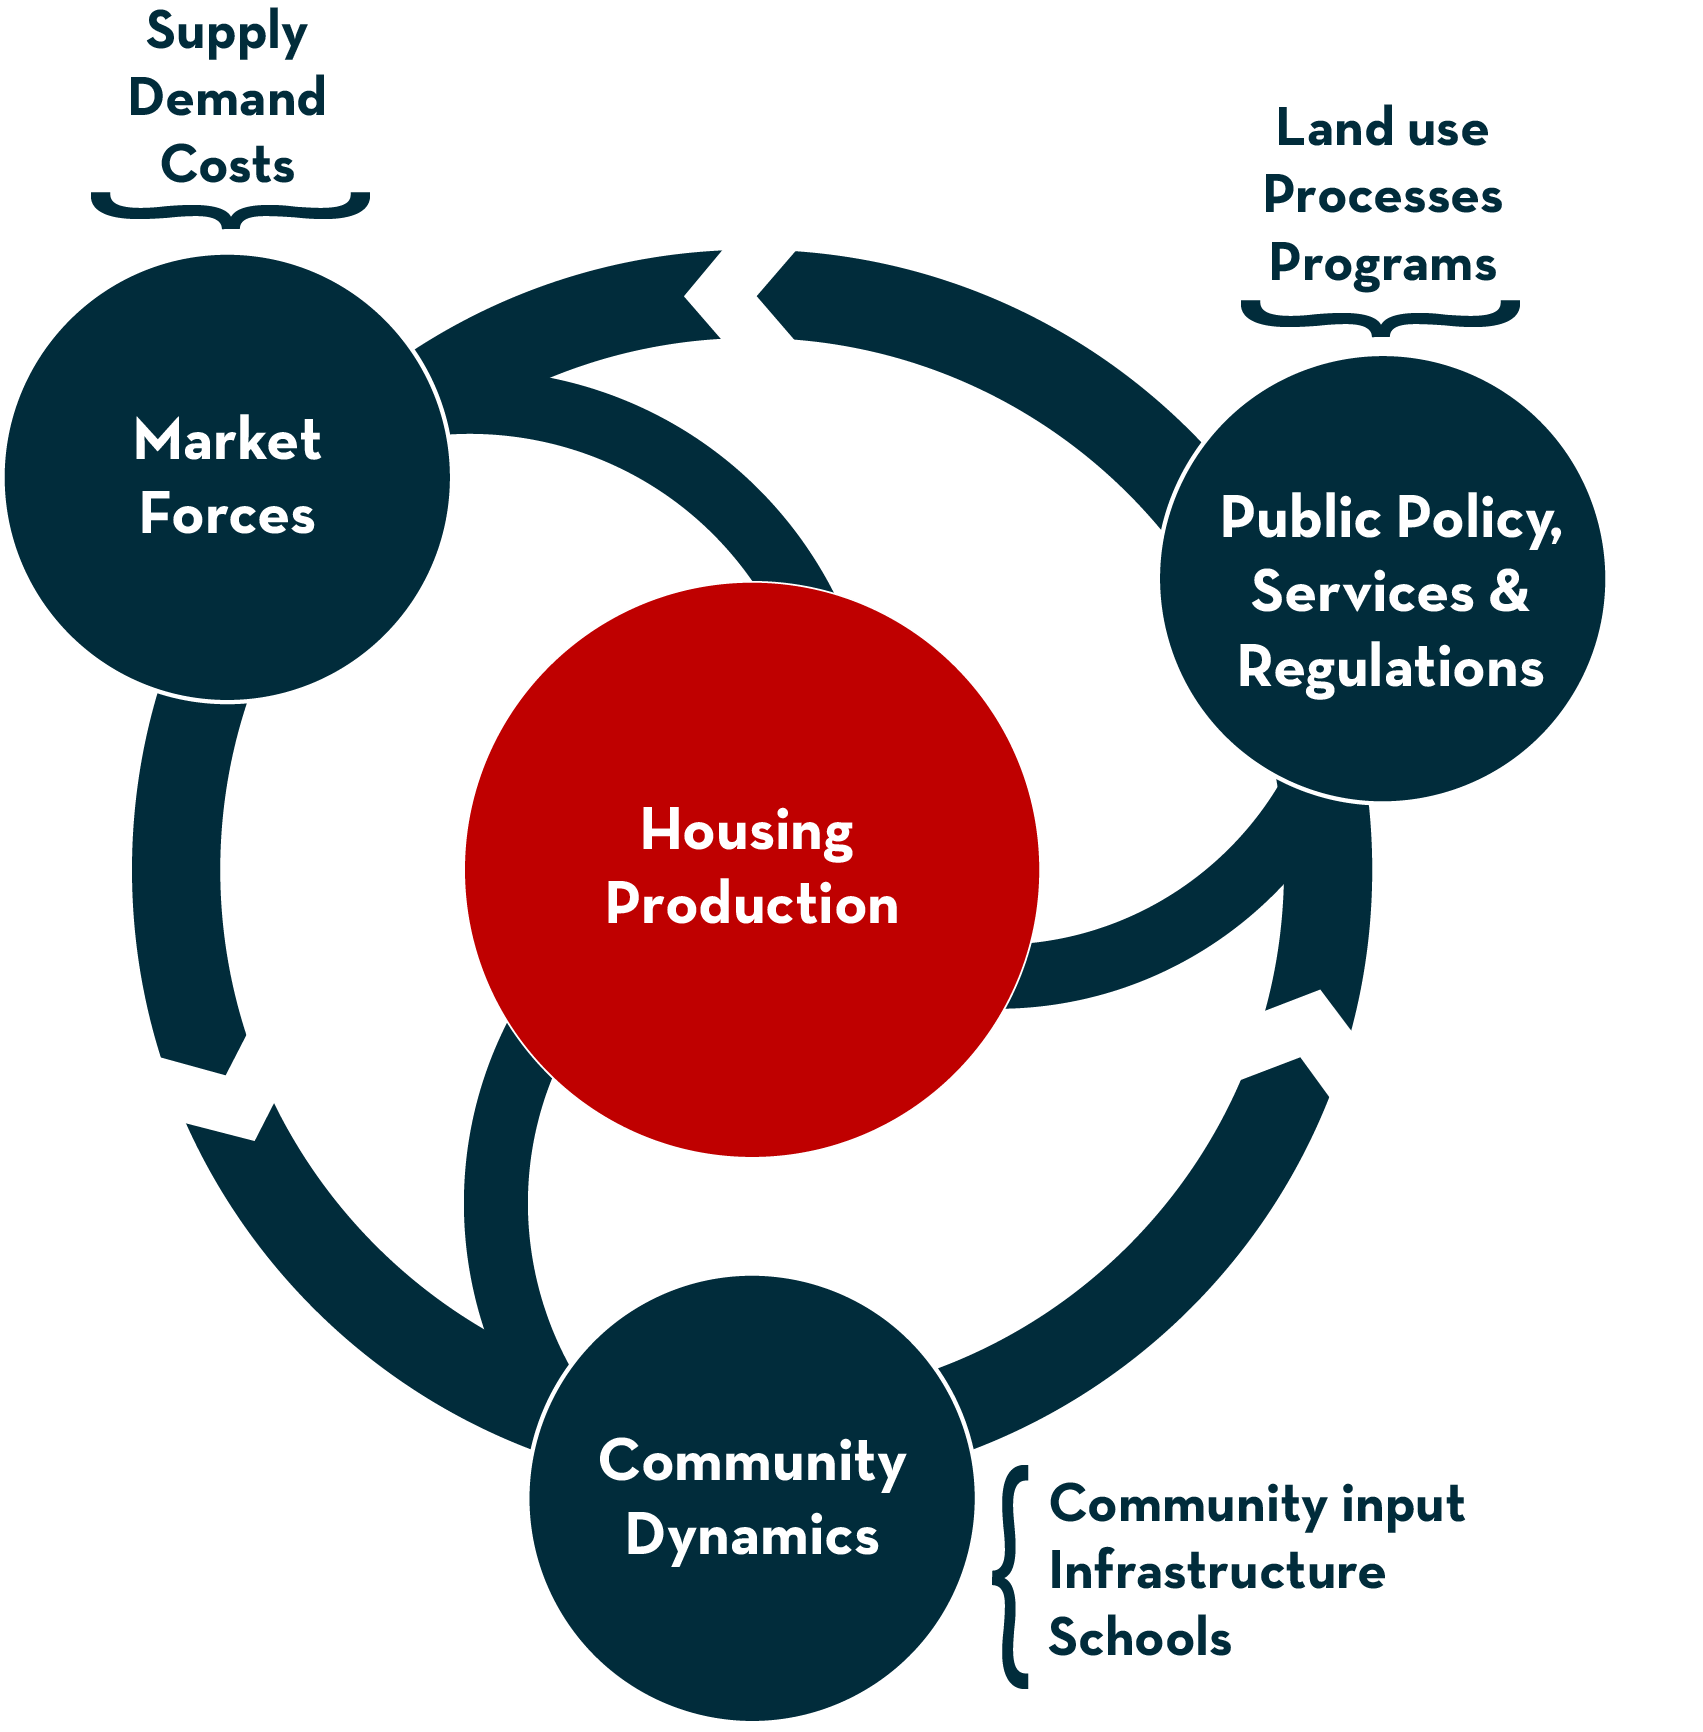 Graphical image showing the cycle of housing production